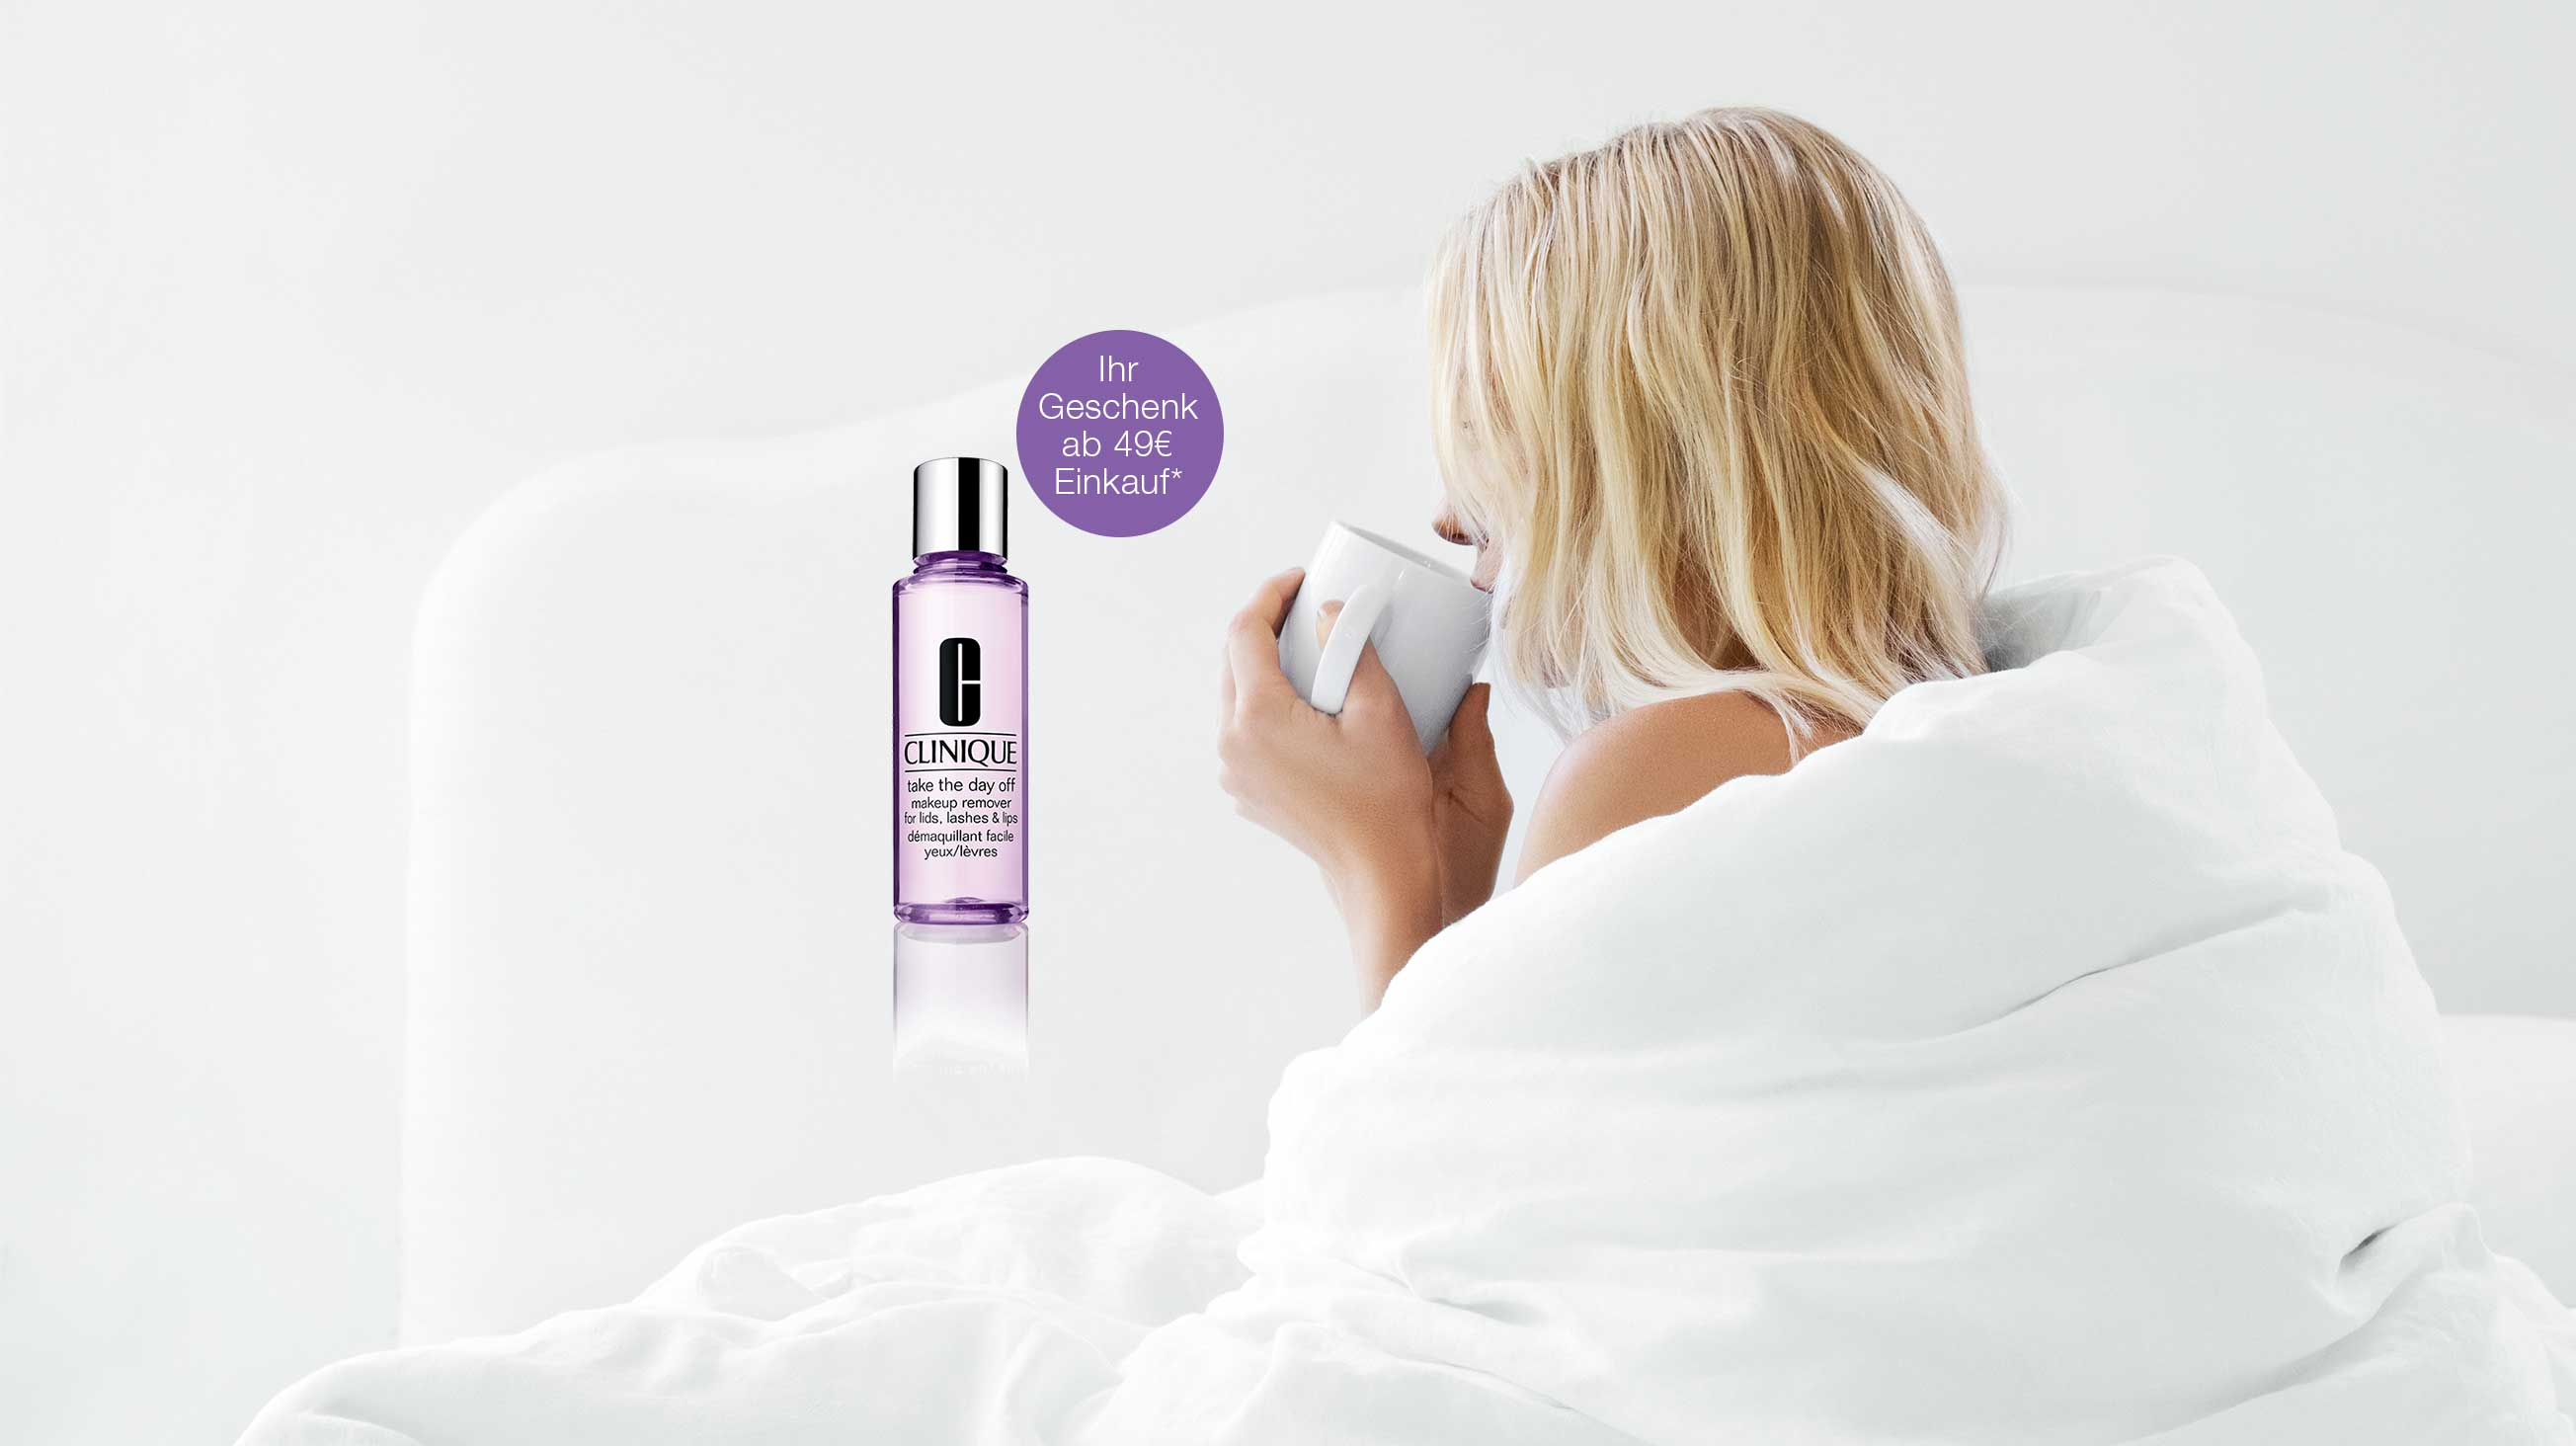 Gratis Take The Day Off Makeup Remover ab 49€ Einkauf